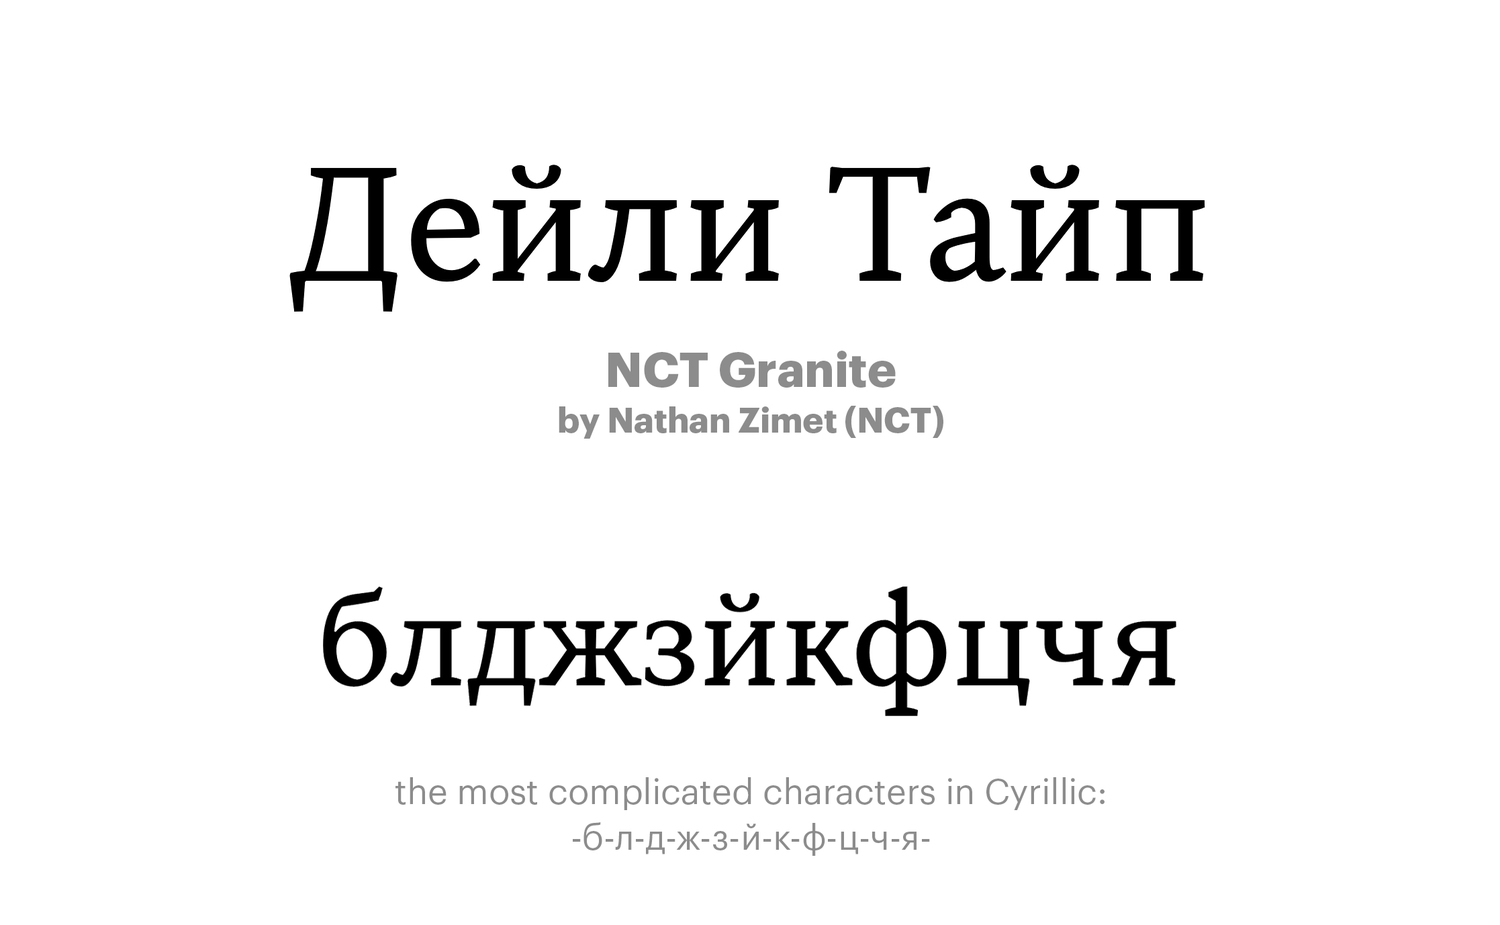 NCT-Granite-by-Nathan-Zimet-(NCT)